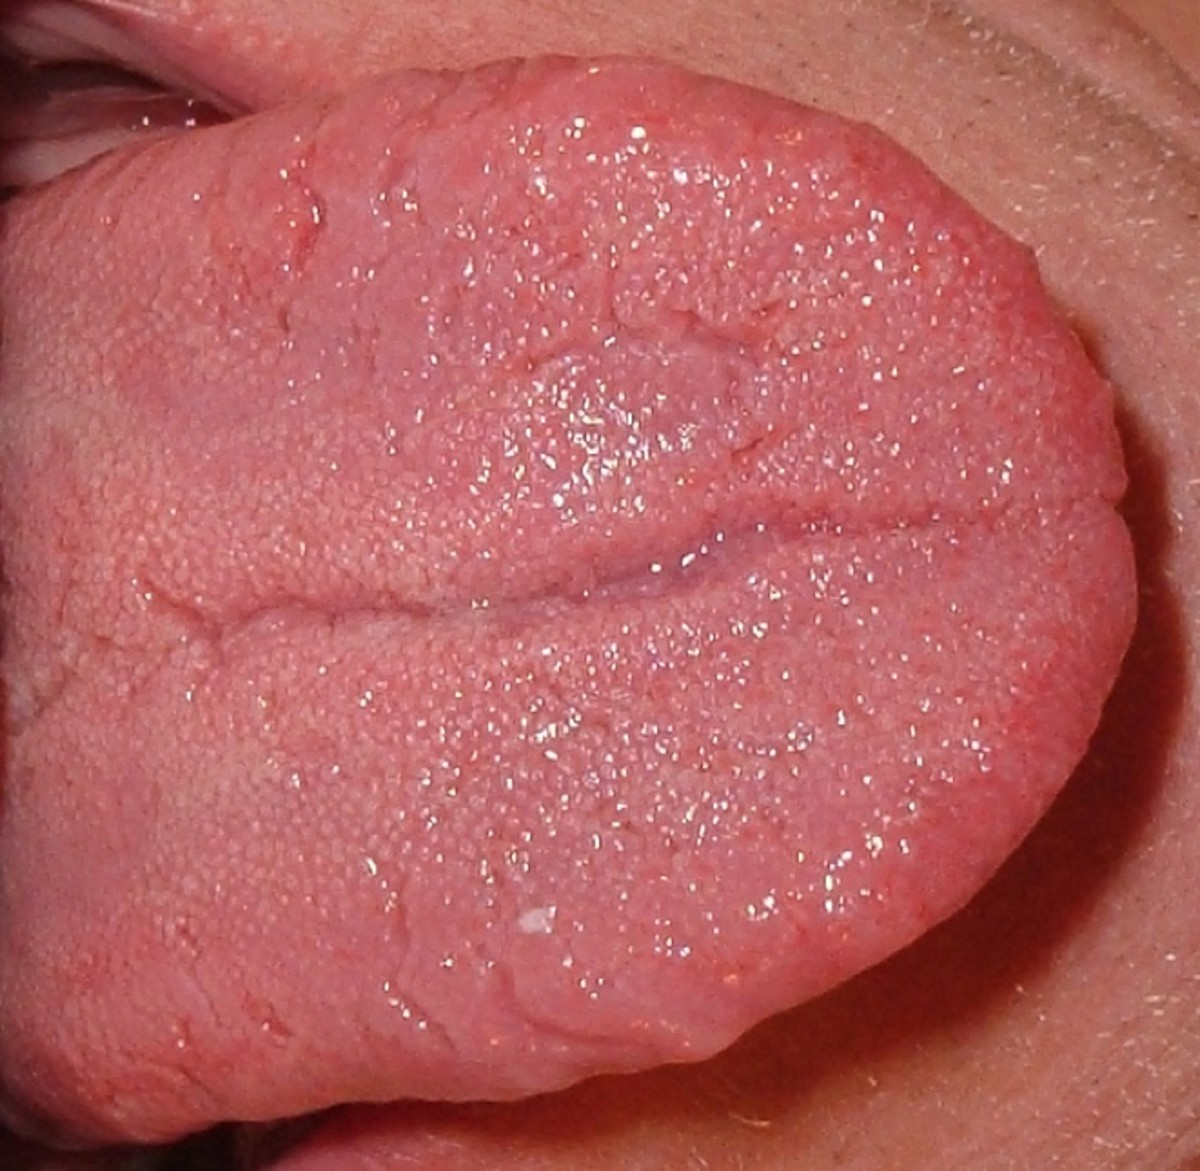 Swollen Tongue: A Painful and Possibly Dangerous Health Problem